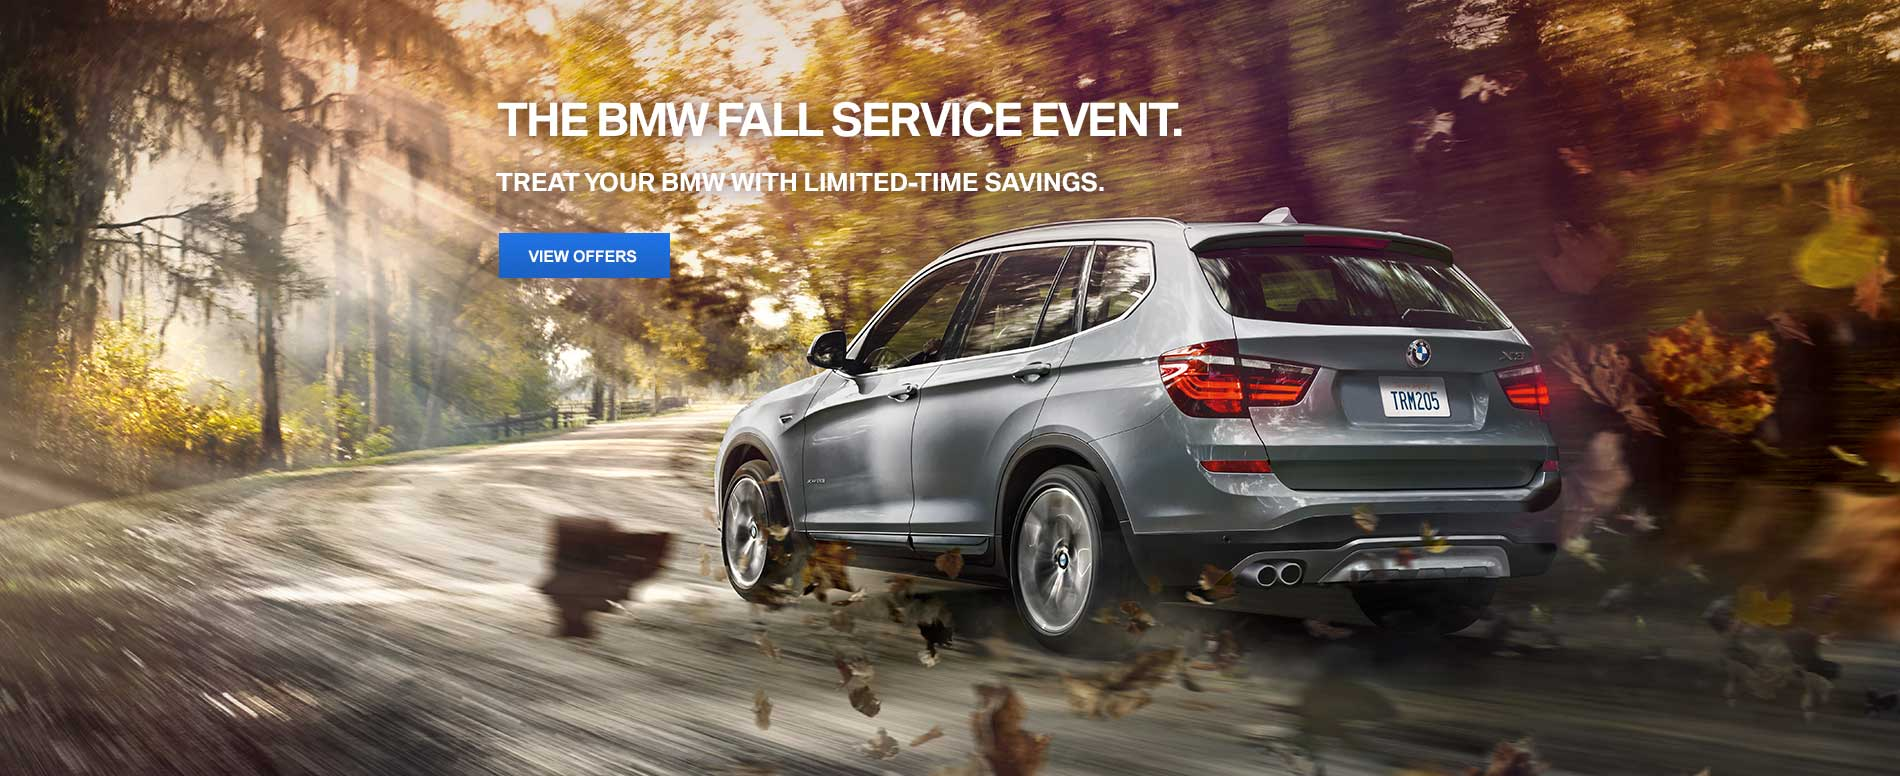 1900x776-Fall-Service-Event